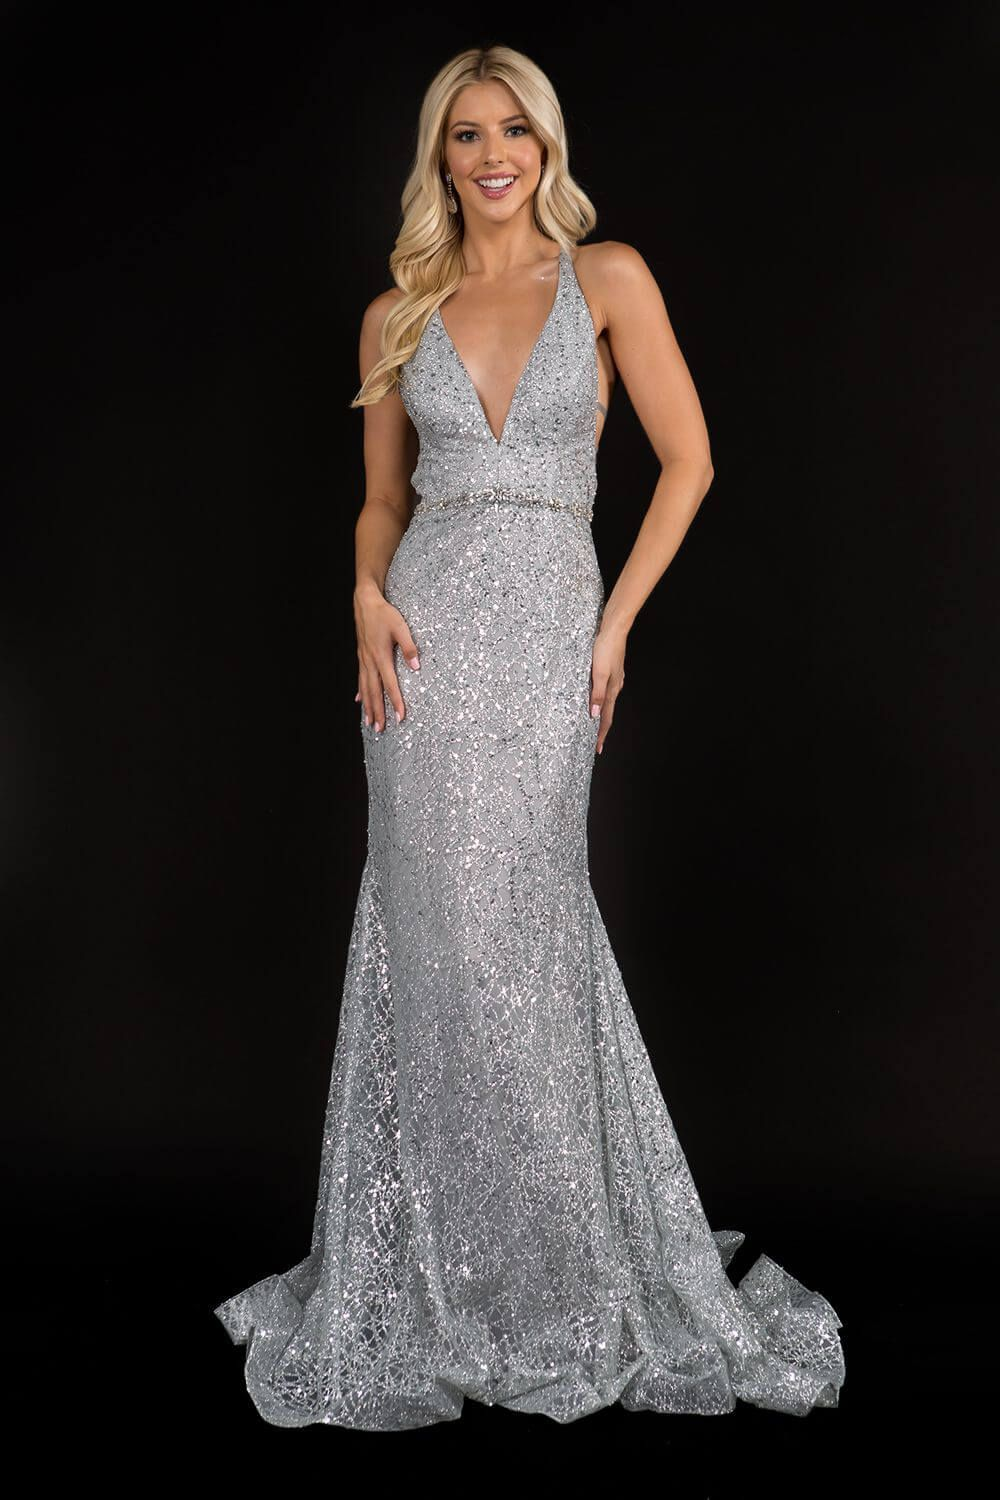 Style 8197 Nina Canacci Silver Size 10 Pageant Corset Tall Height Mermaid Dress on Queenly